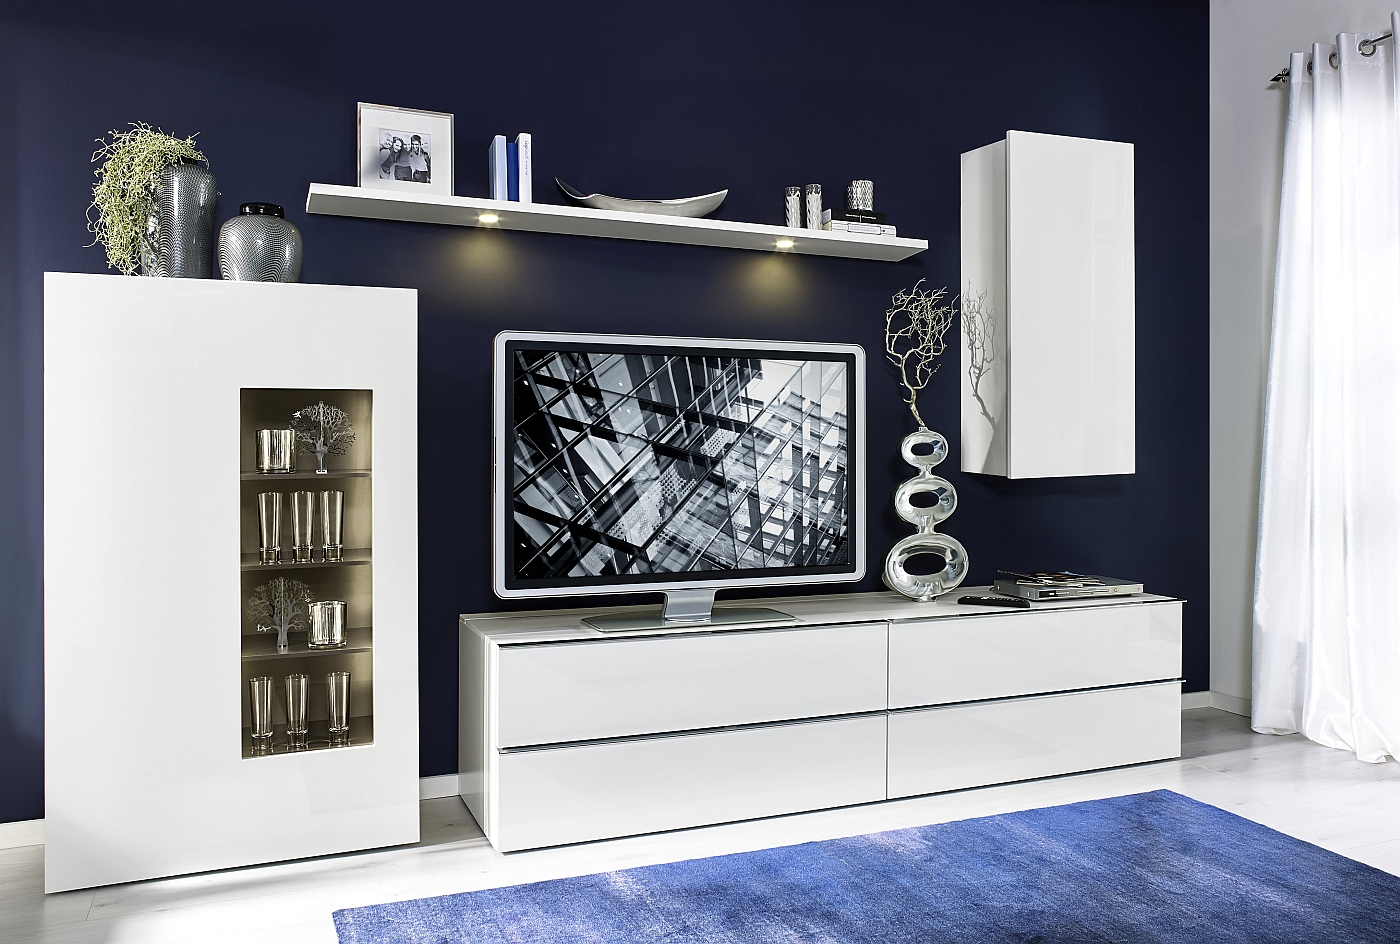 Media-3000 FERNSEHMÖBEL / SIDEBOARDS